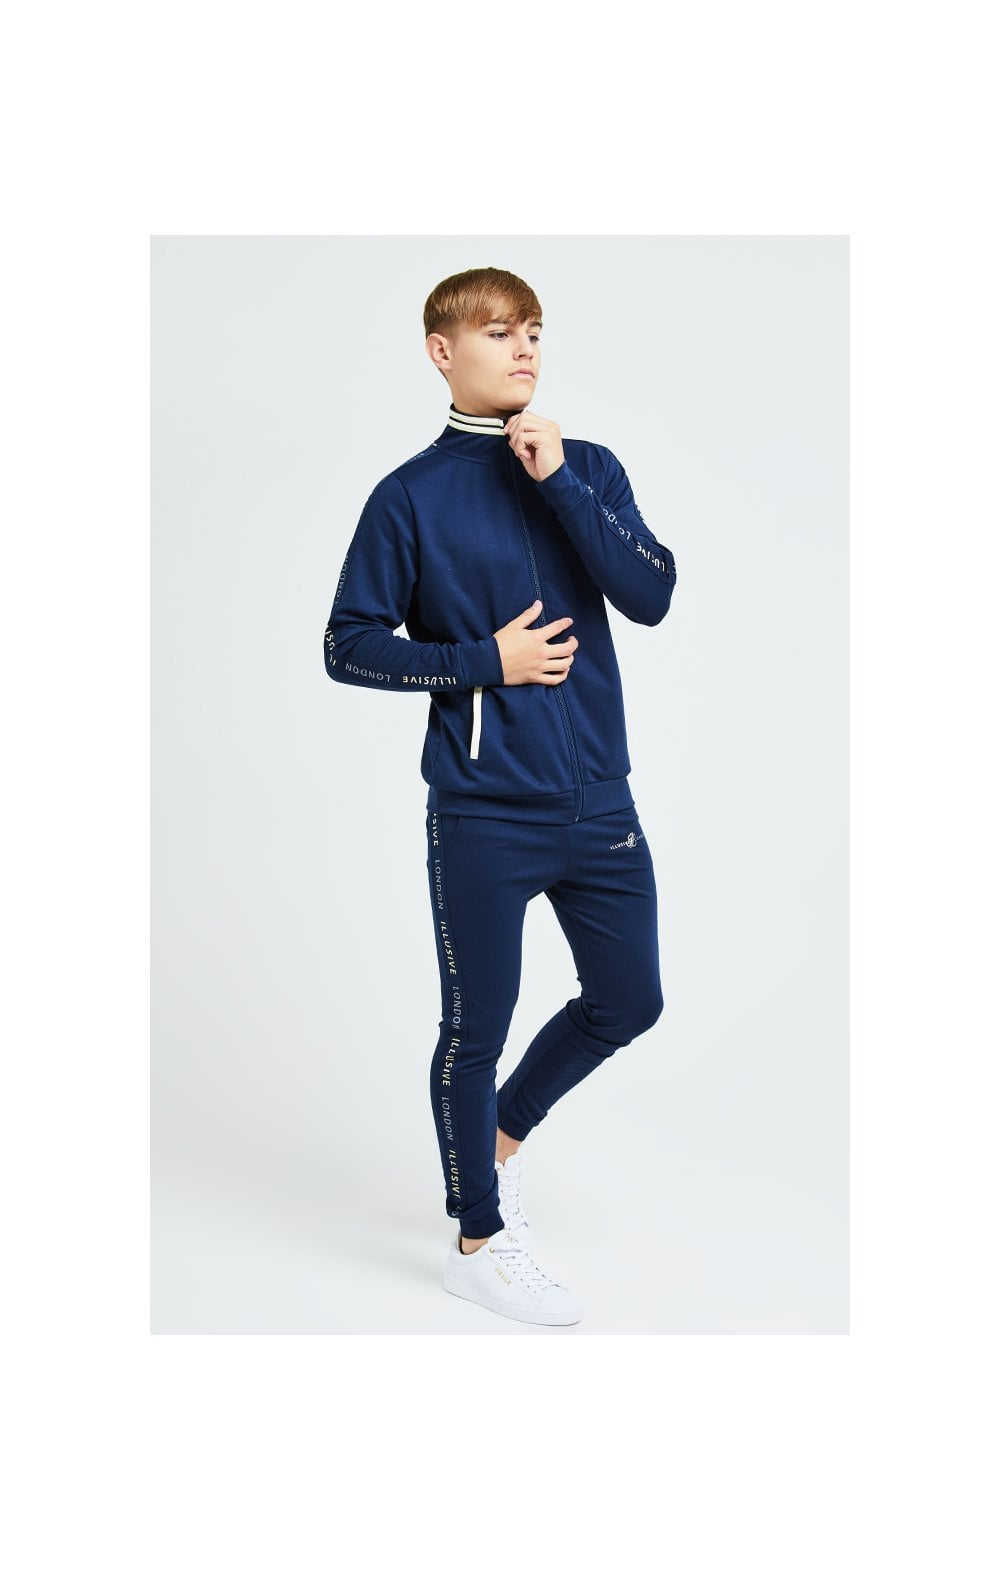 Illusive London Legacy Track Top - Navy & Cream (5)